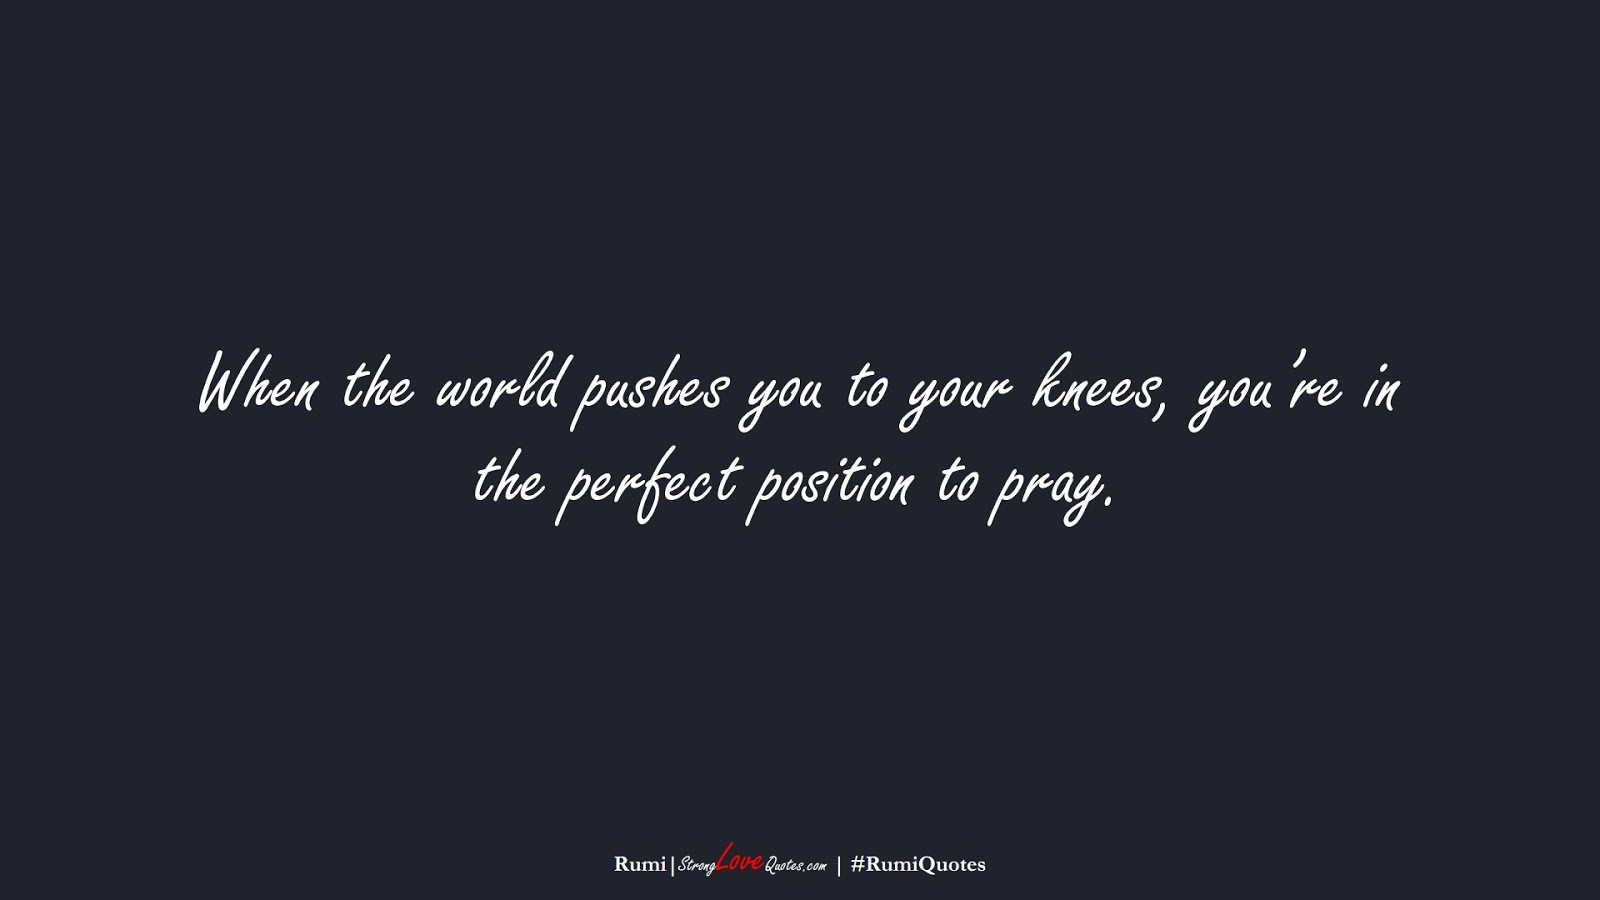 When the world pushes you to your knees, you're in the perfect position to pray. (Rumi);  #RumiQuotes